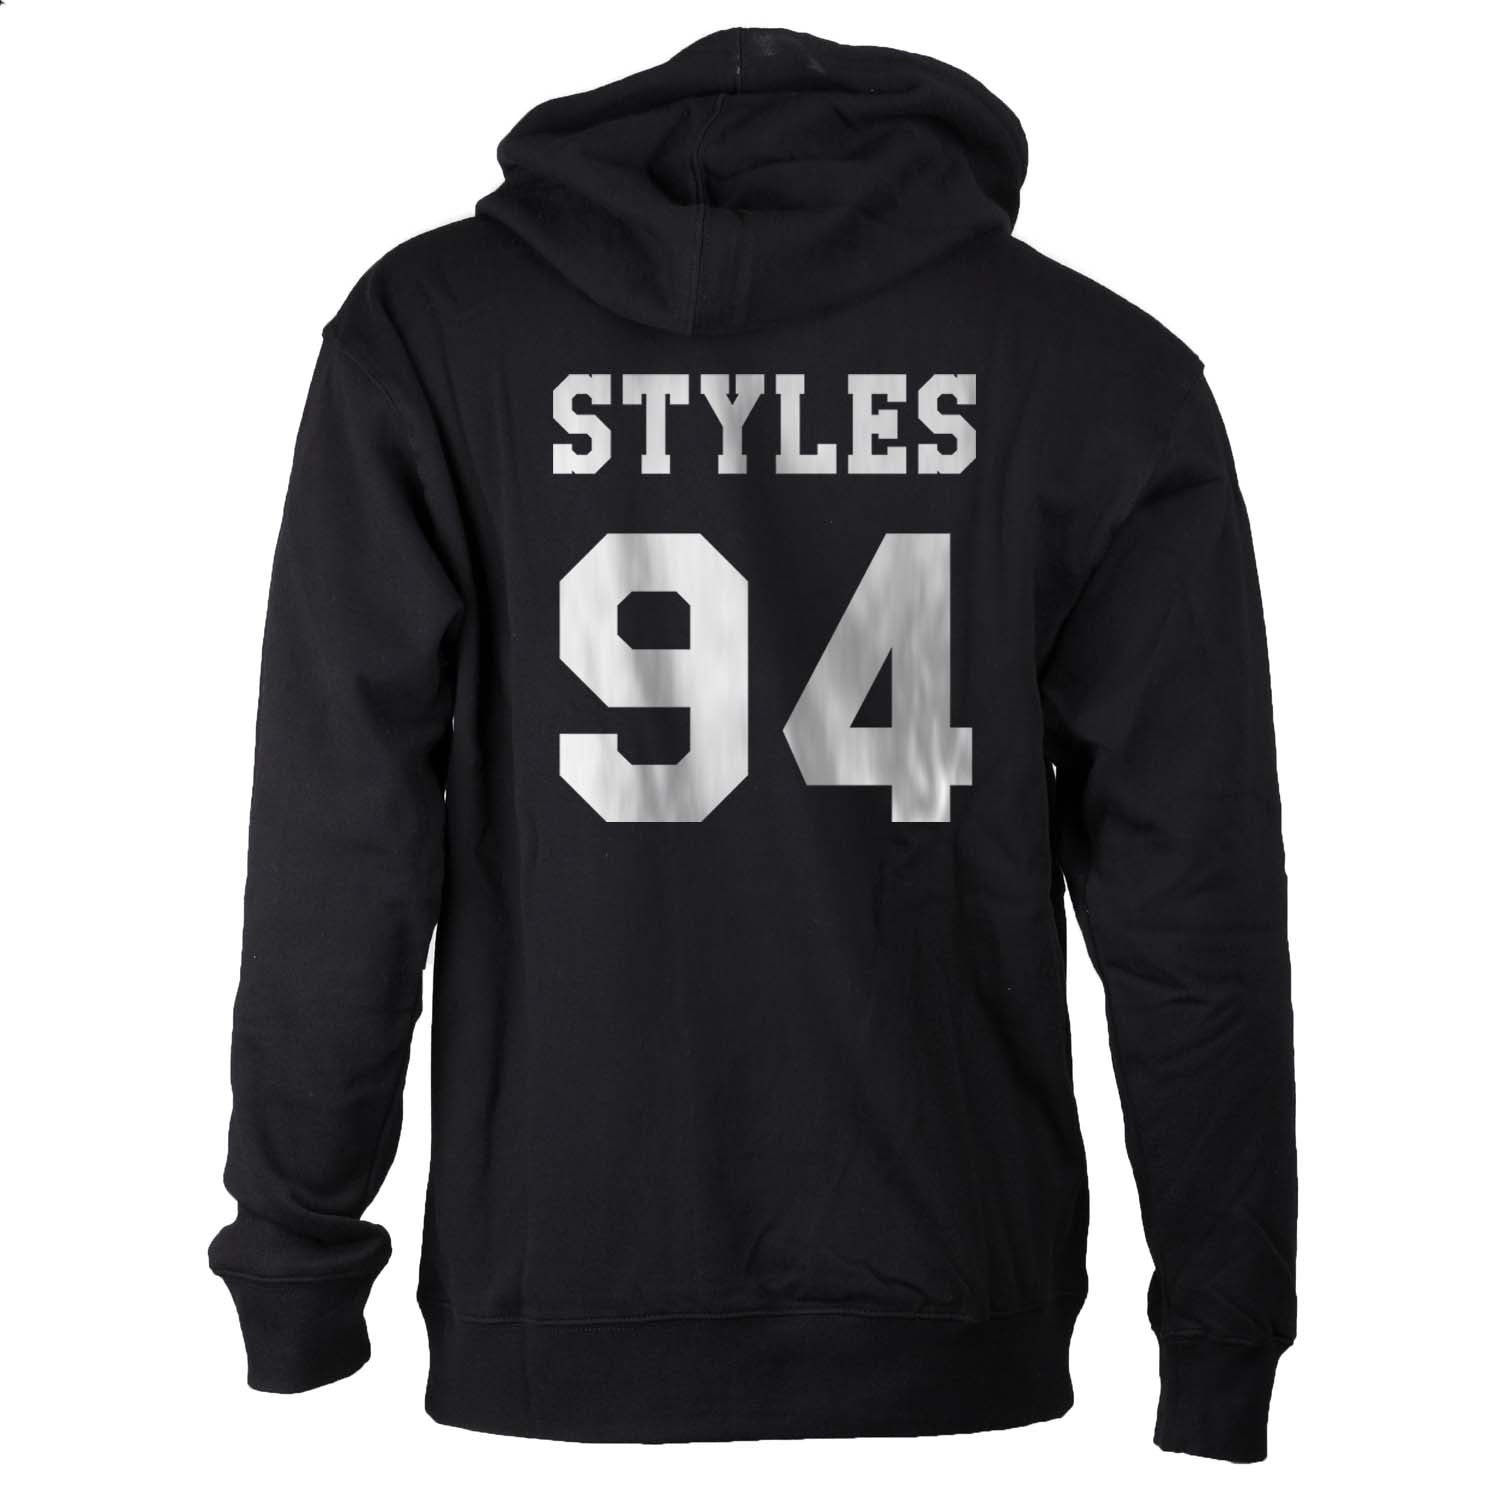 4b82423ea7f 36.00 USD Styles 94 on BACK Harry Styles Unisex Pullover Hoodie - Meh.